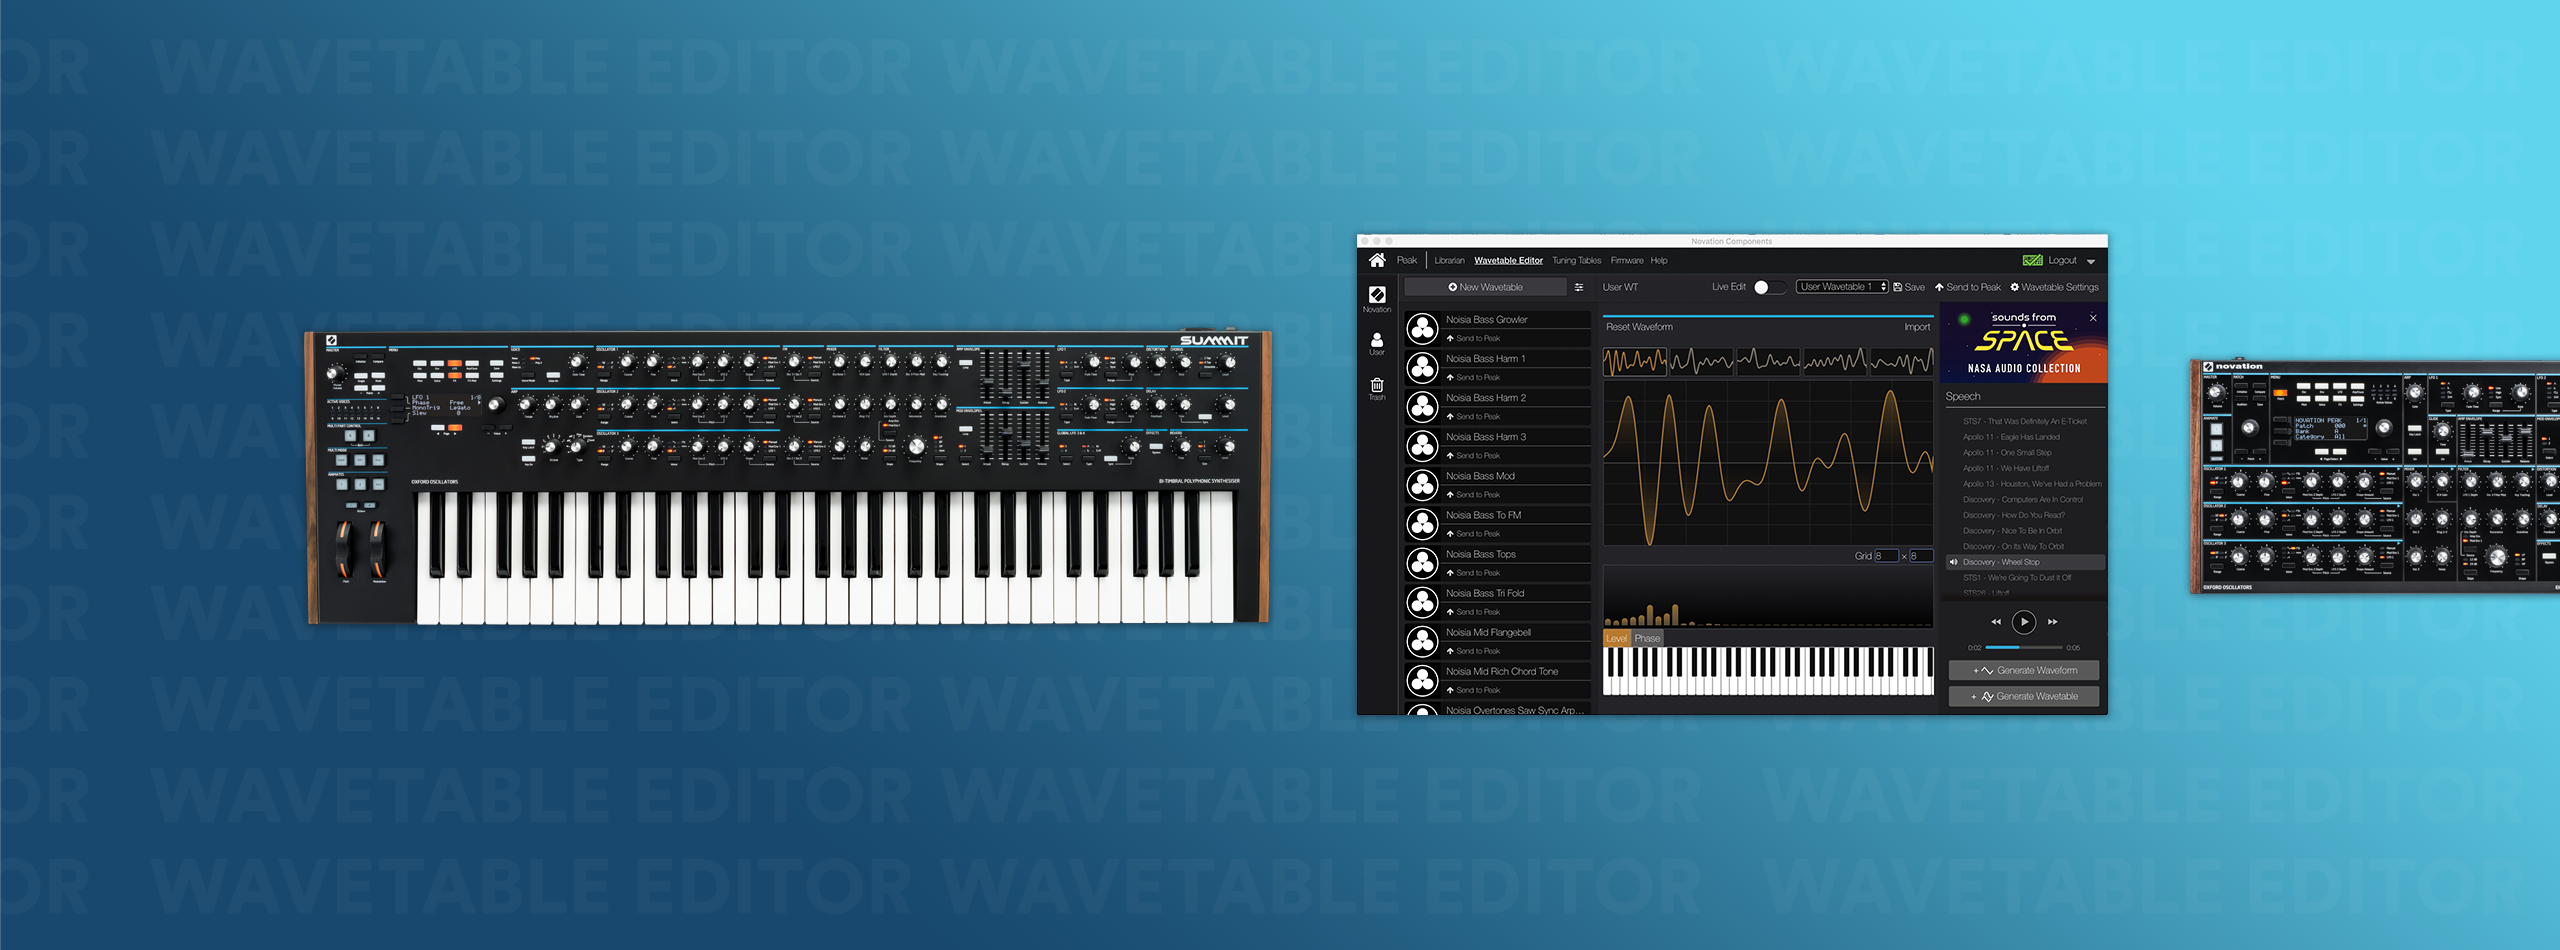 Wavetable - Peak and Summit